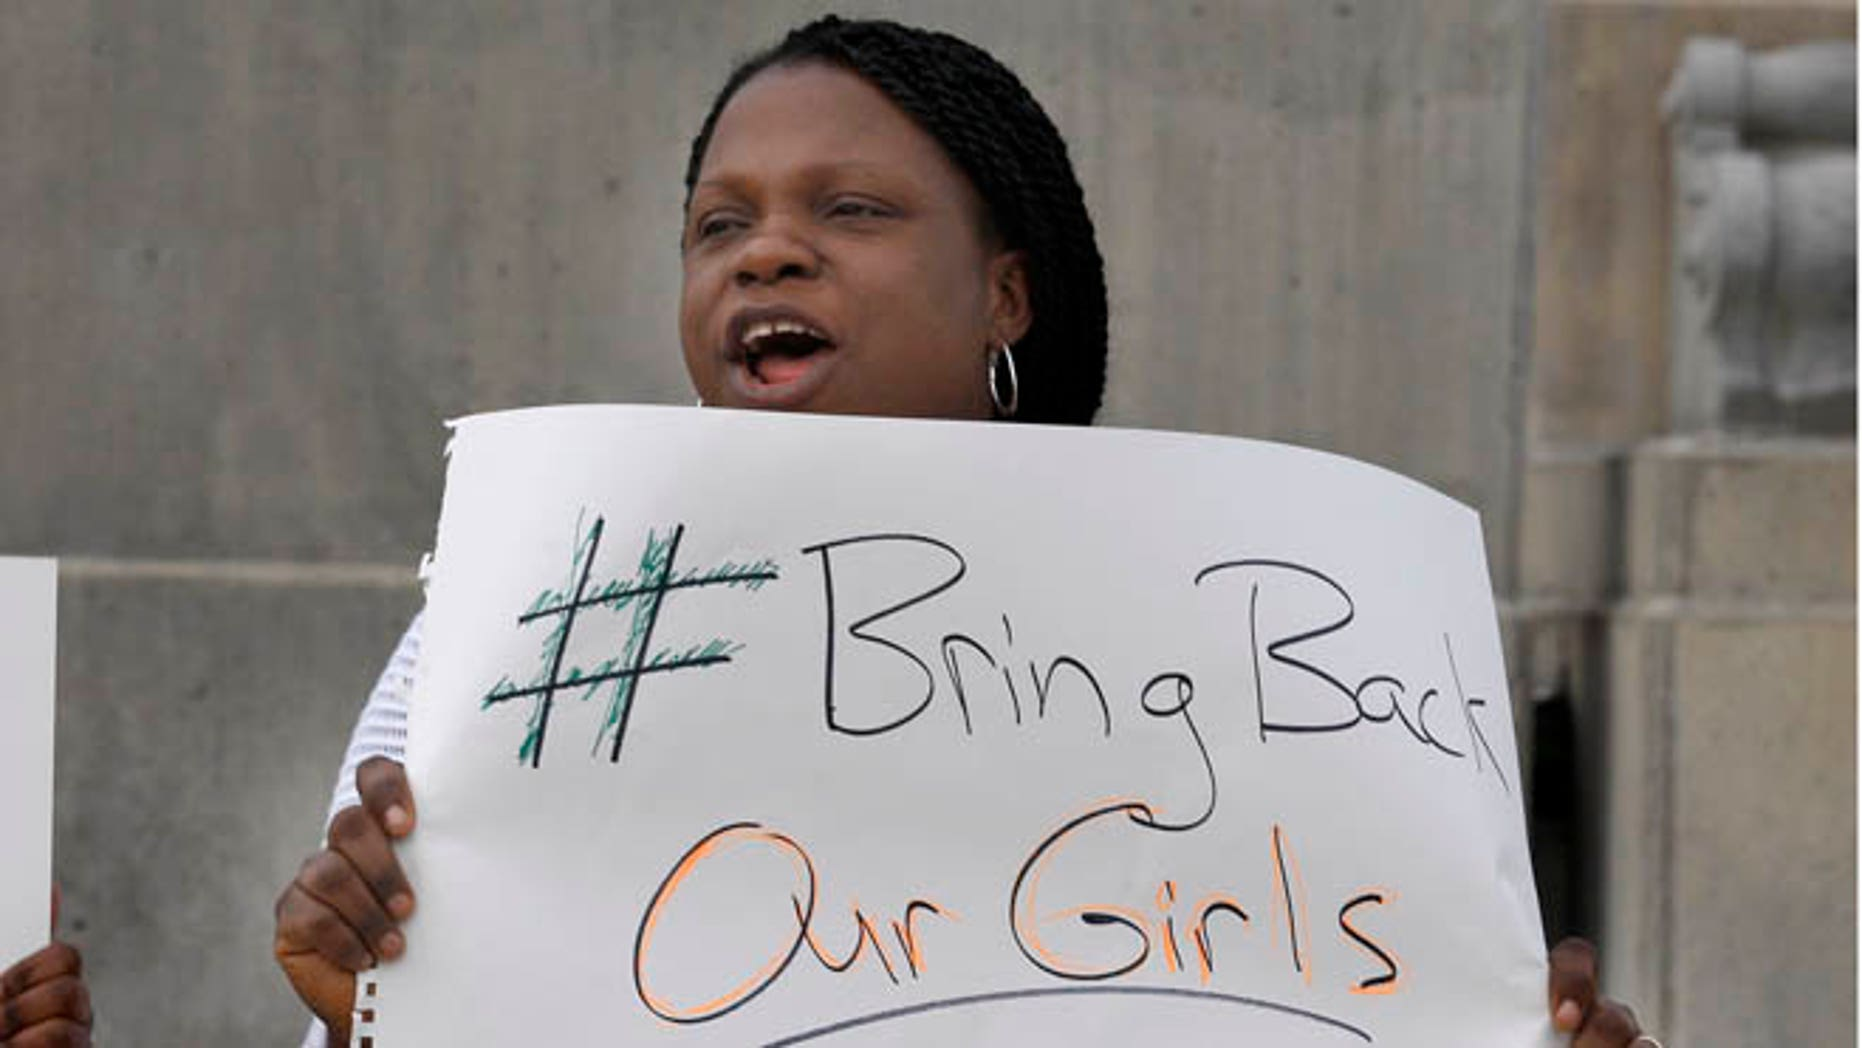 May 10, 2014: A woman at a rally to raise awareness about the abduction of school girls in Nigeria, Salt Lake City, Nevada.